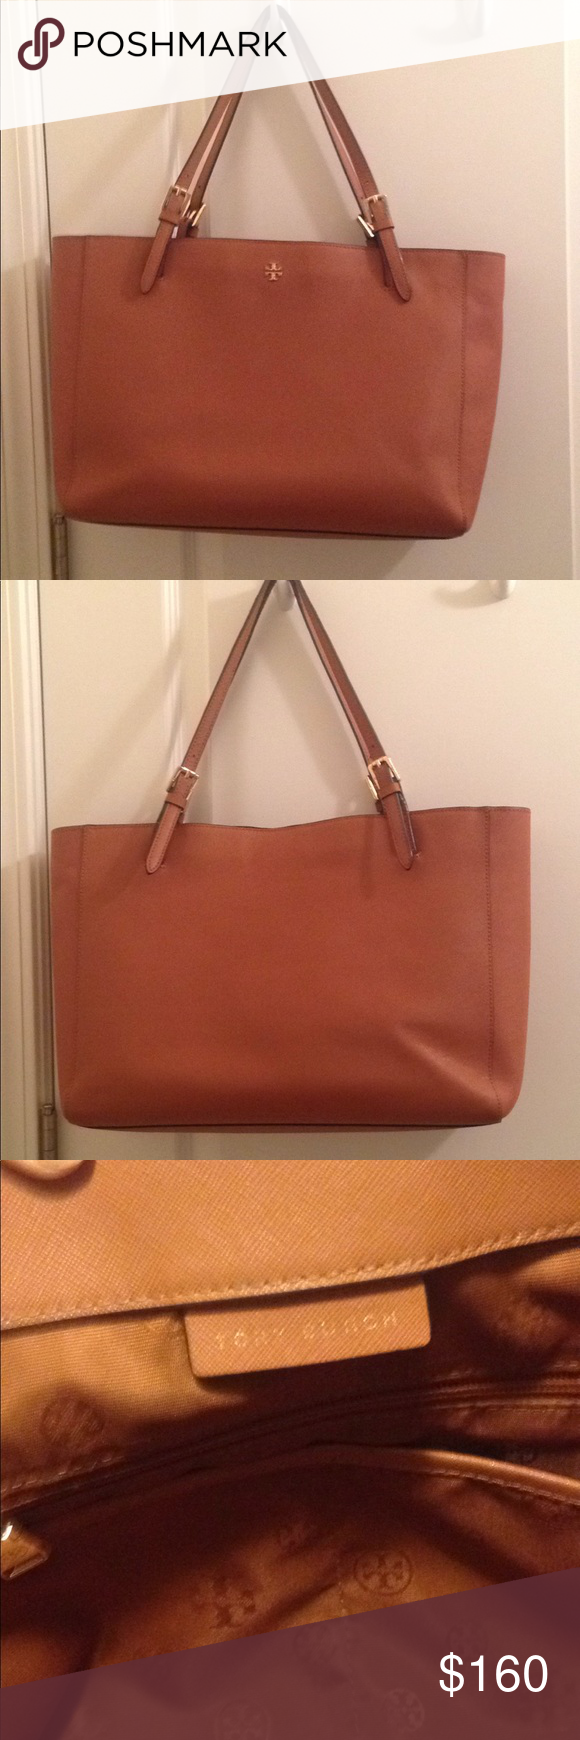 29798d64acd Tory Burch Safiano Leather large Tote Handbag!! Used condition!! The straps  shows